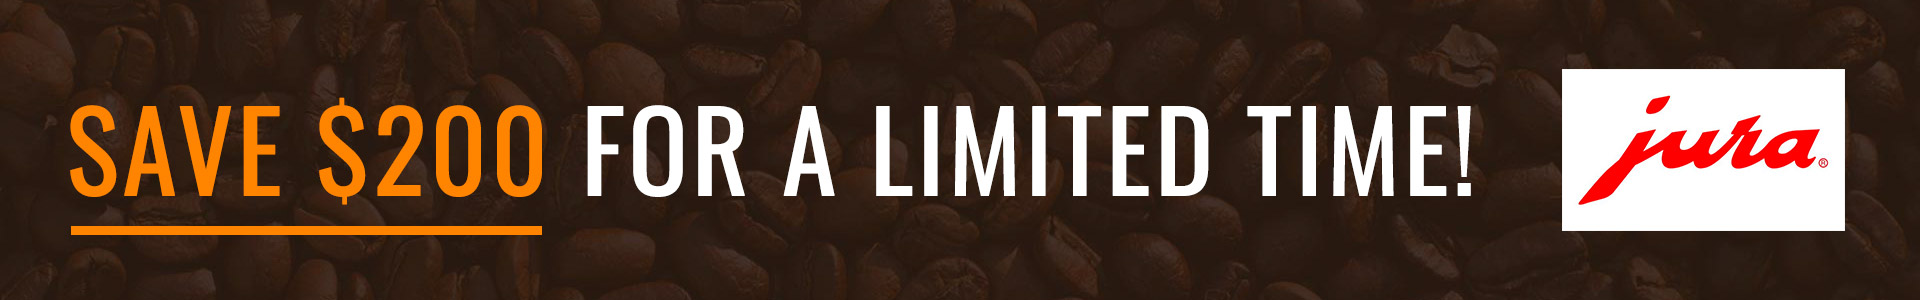 Product-Sale-banner-home-coffee-machines-SAVE-200